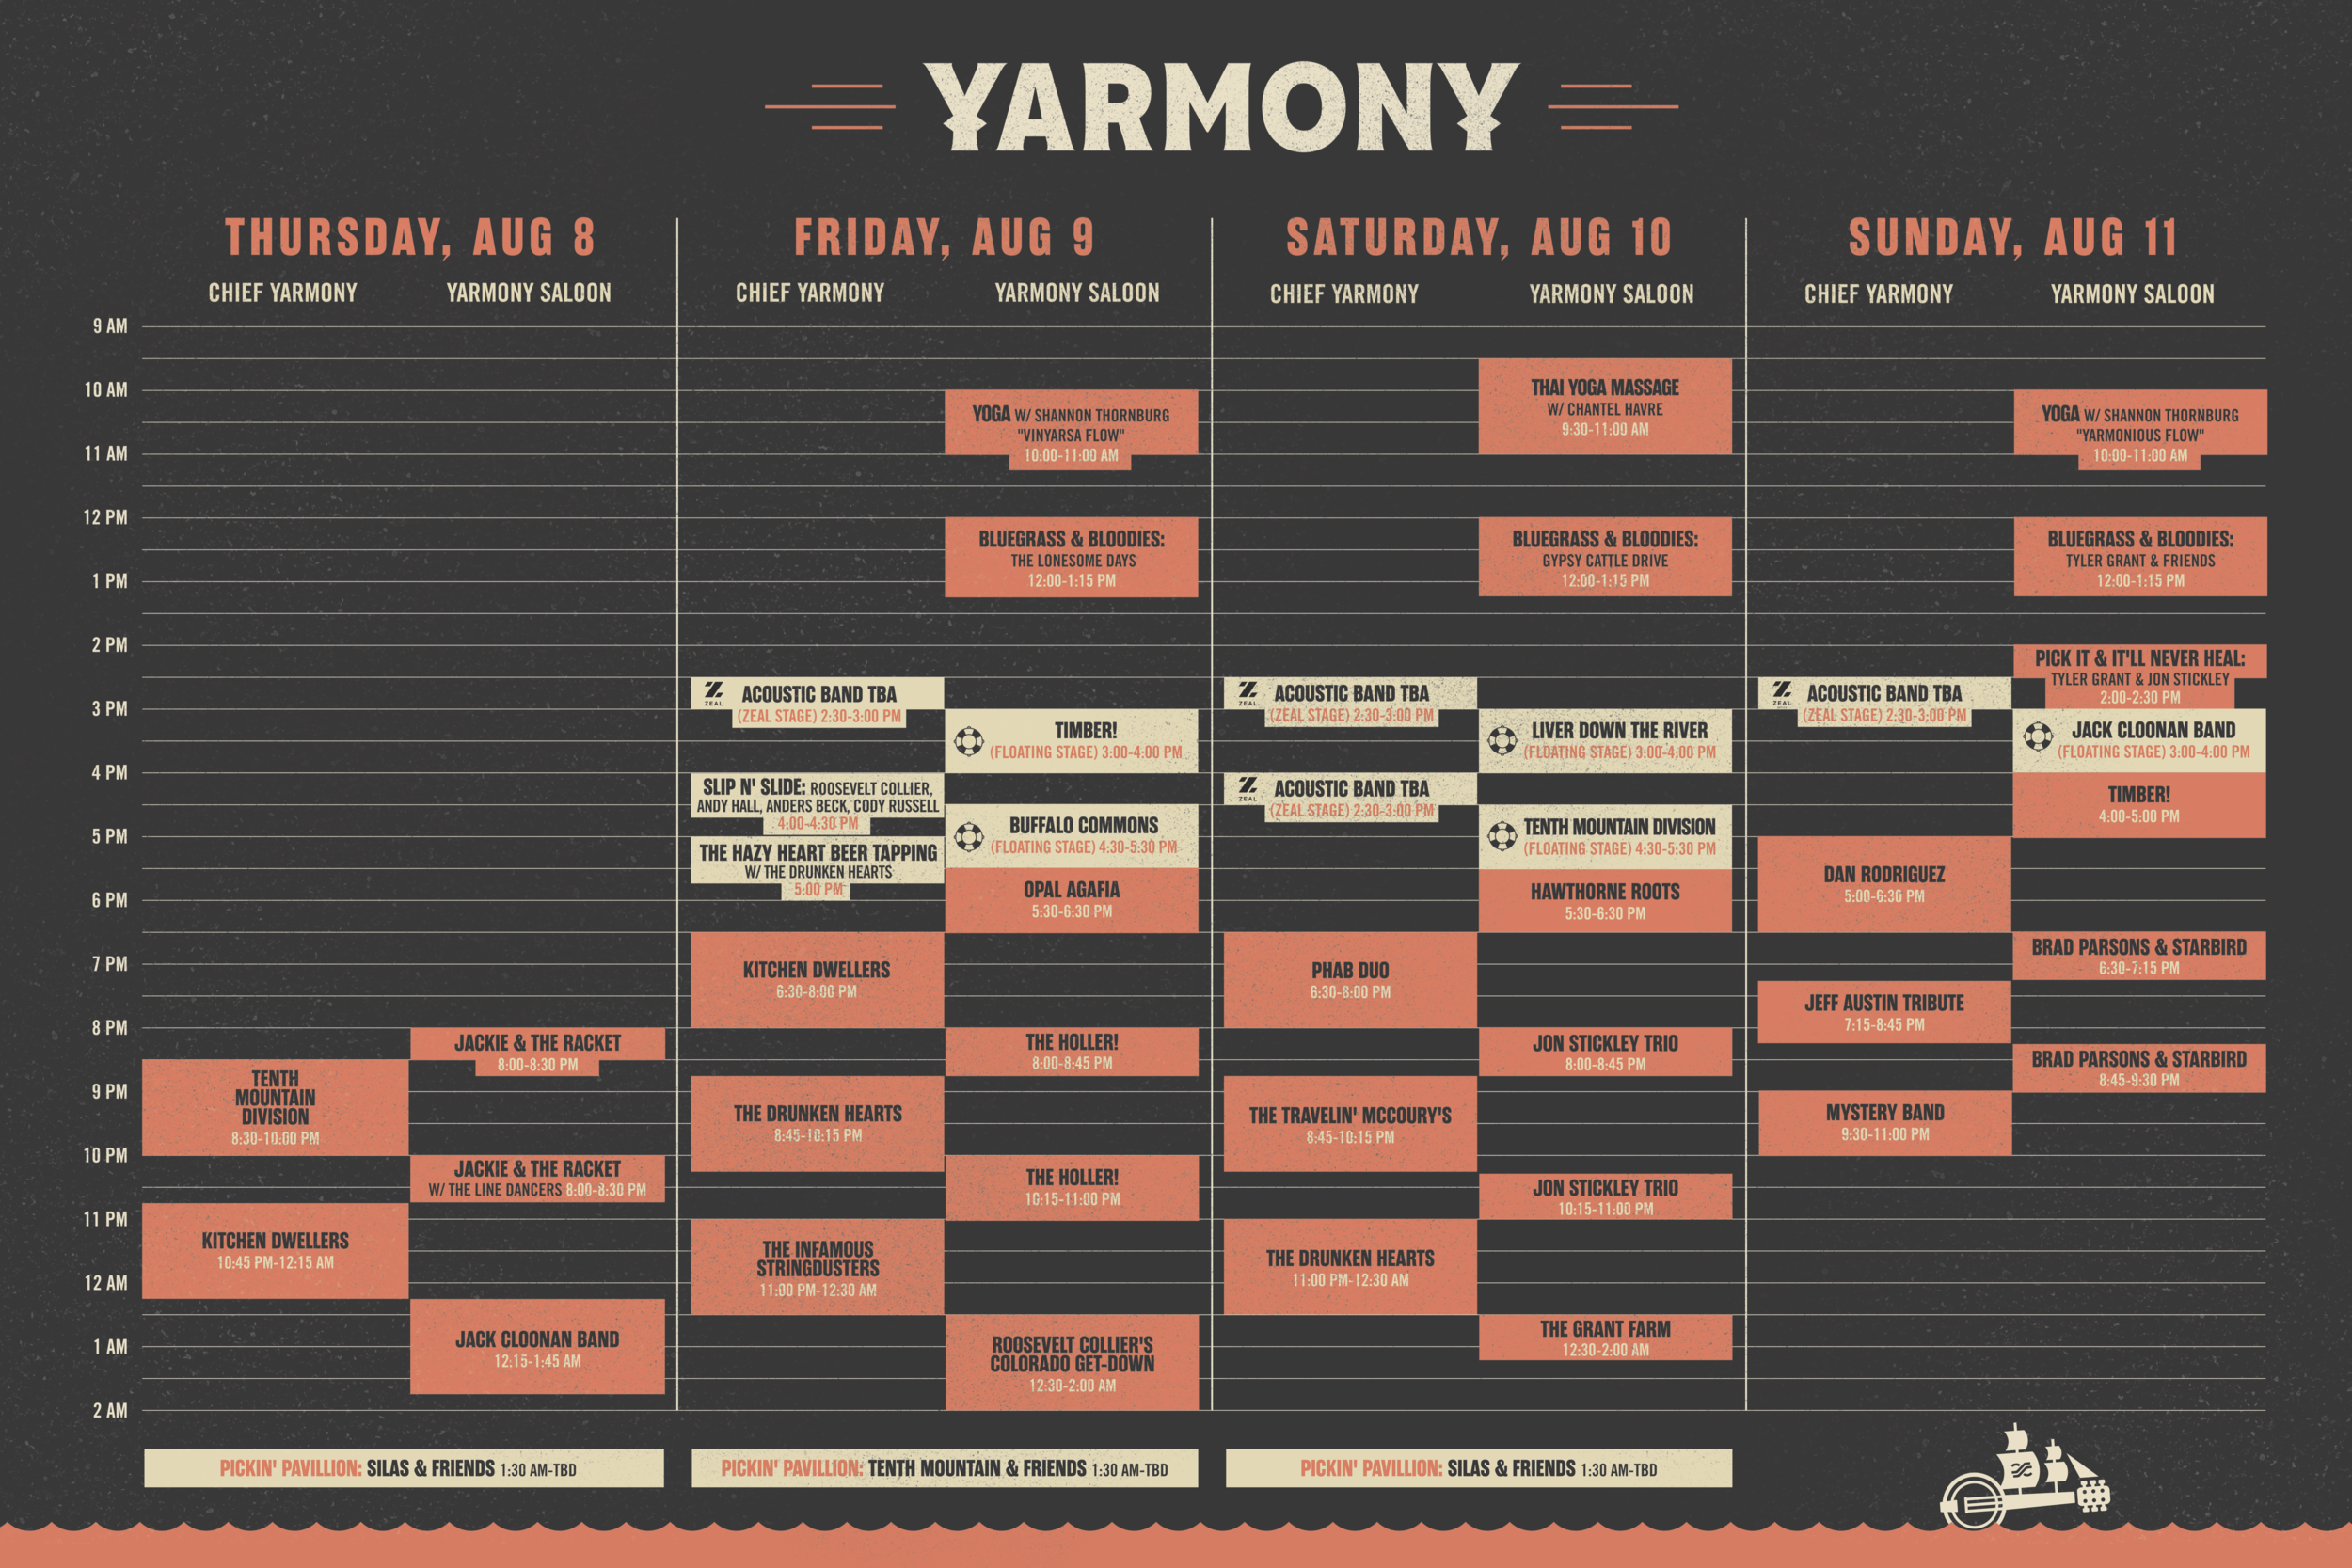 Yarmony2019_schedule_FINAL-01_edit.png